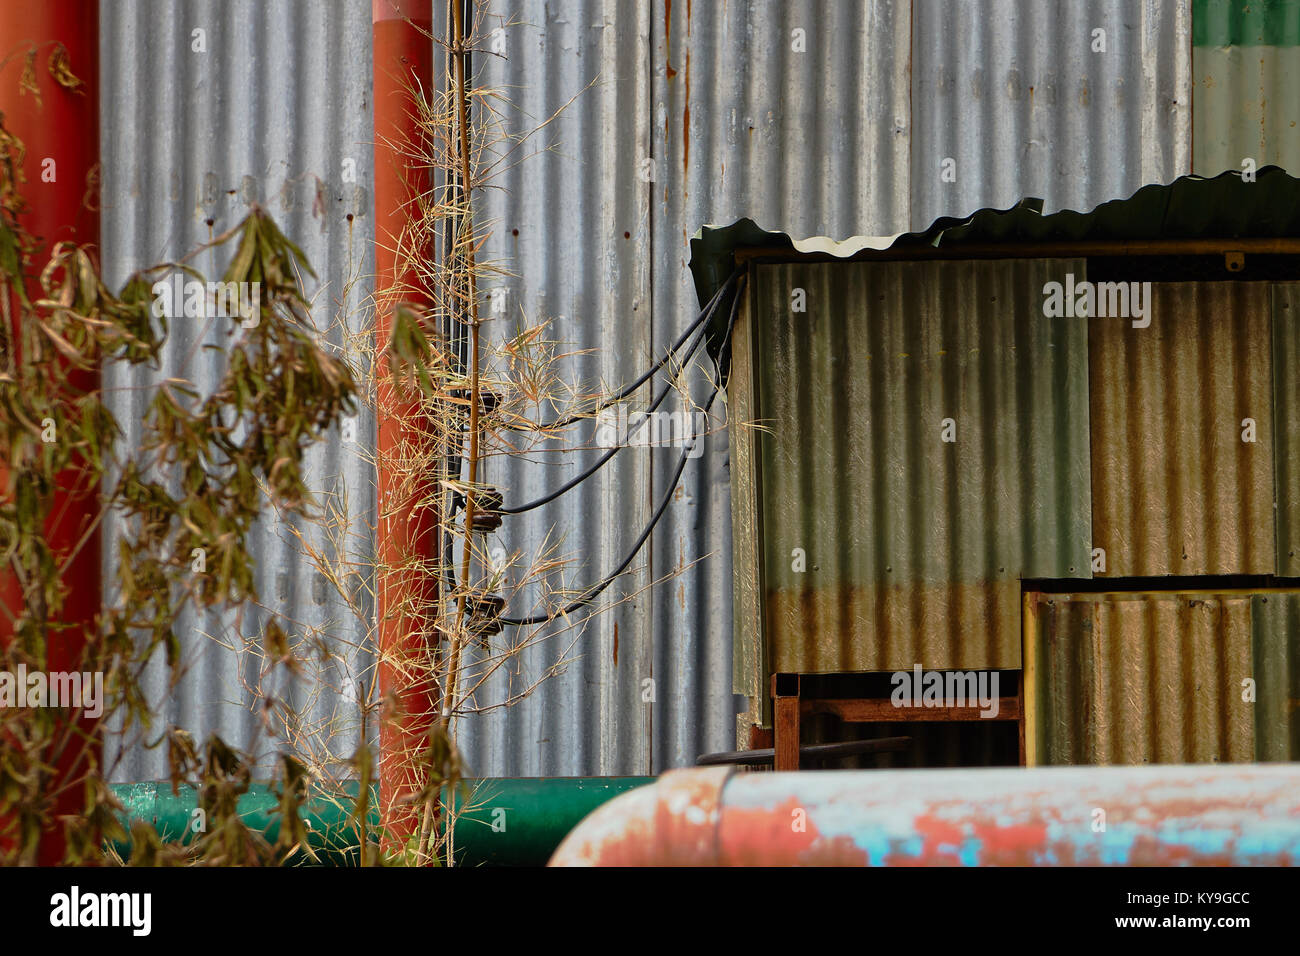 abstract image of painted corrugated metal wall - Stock Image